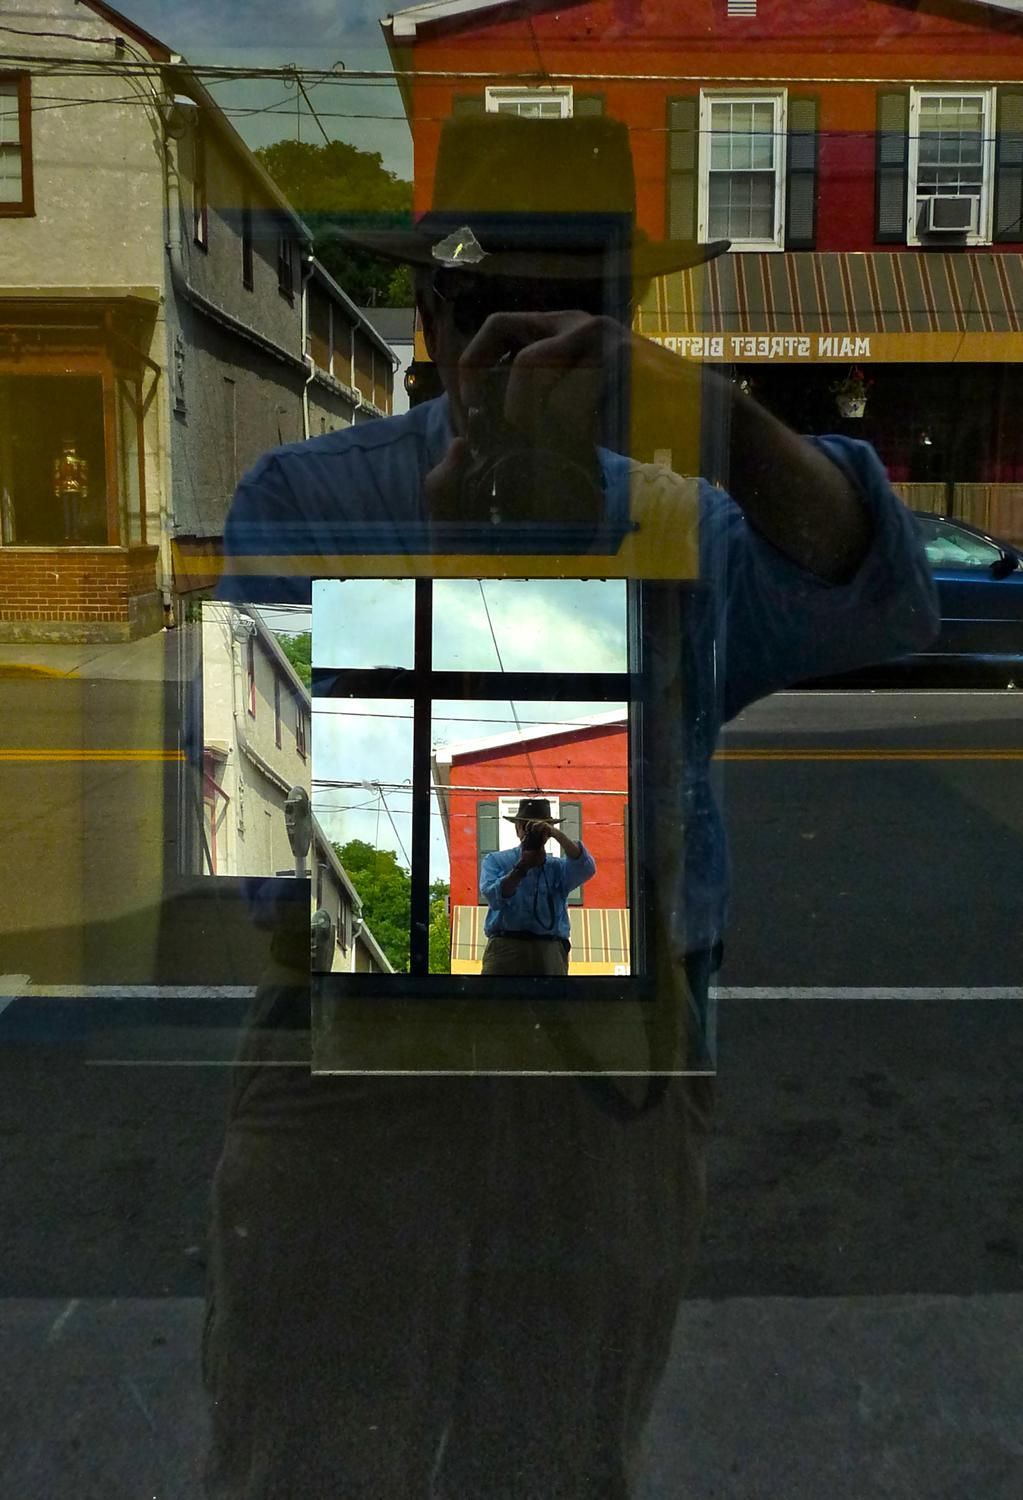 a reflection of the artist in a mirror in a store window - The spirit of René Magritte visits Berryville - Berryville Virginia - Panasonic DMC-FZ28 - - art  - photography - by Tony Karp